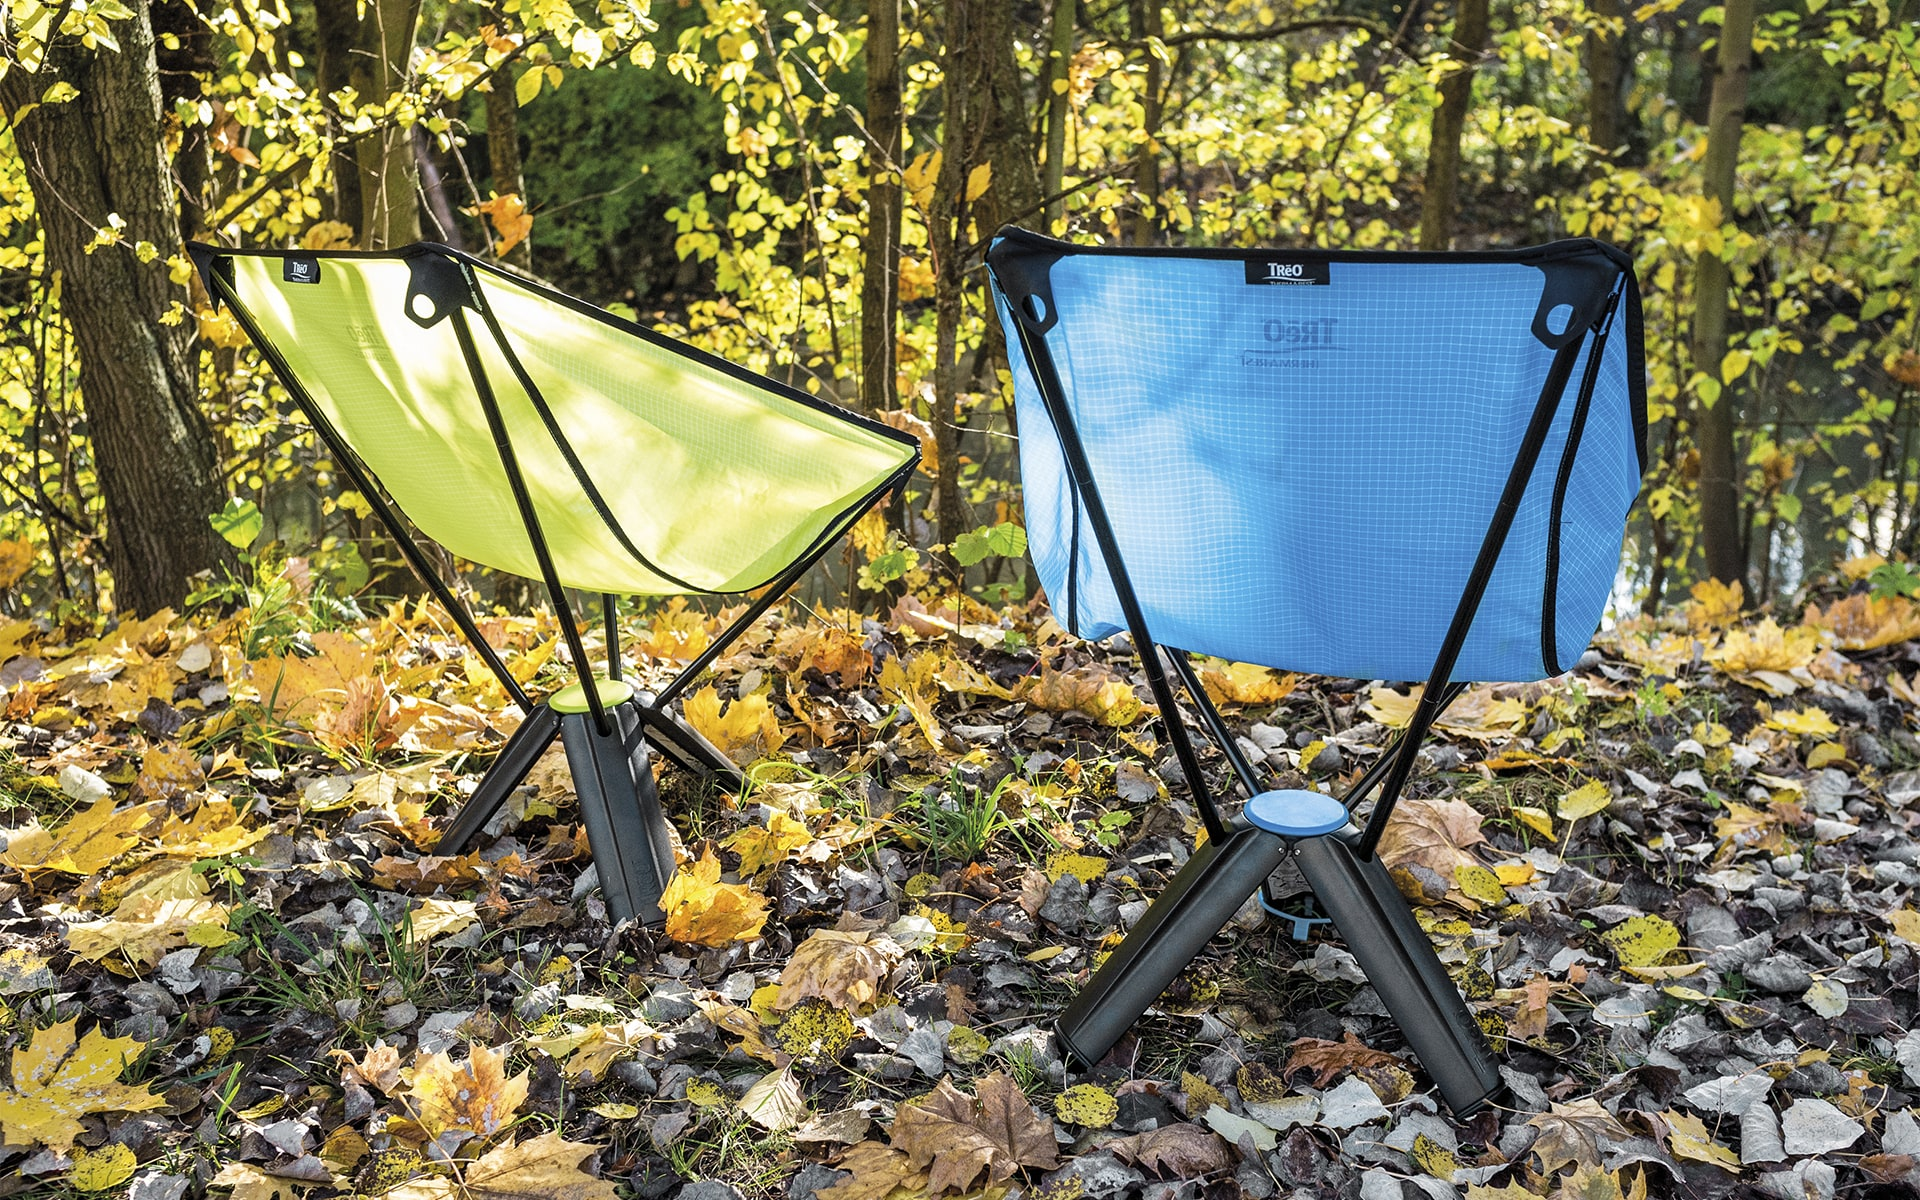 Collapsable outdoor chairs Therm-a-Rest Treo by ITO Design in green and blue on autumn ground